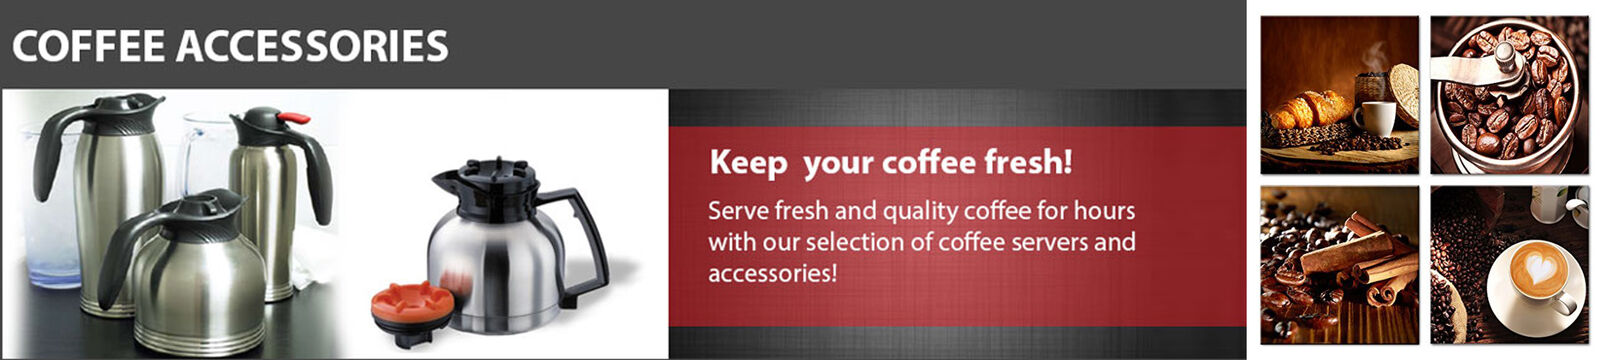 coffee accessories store